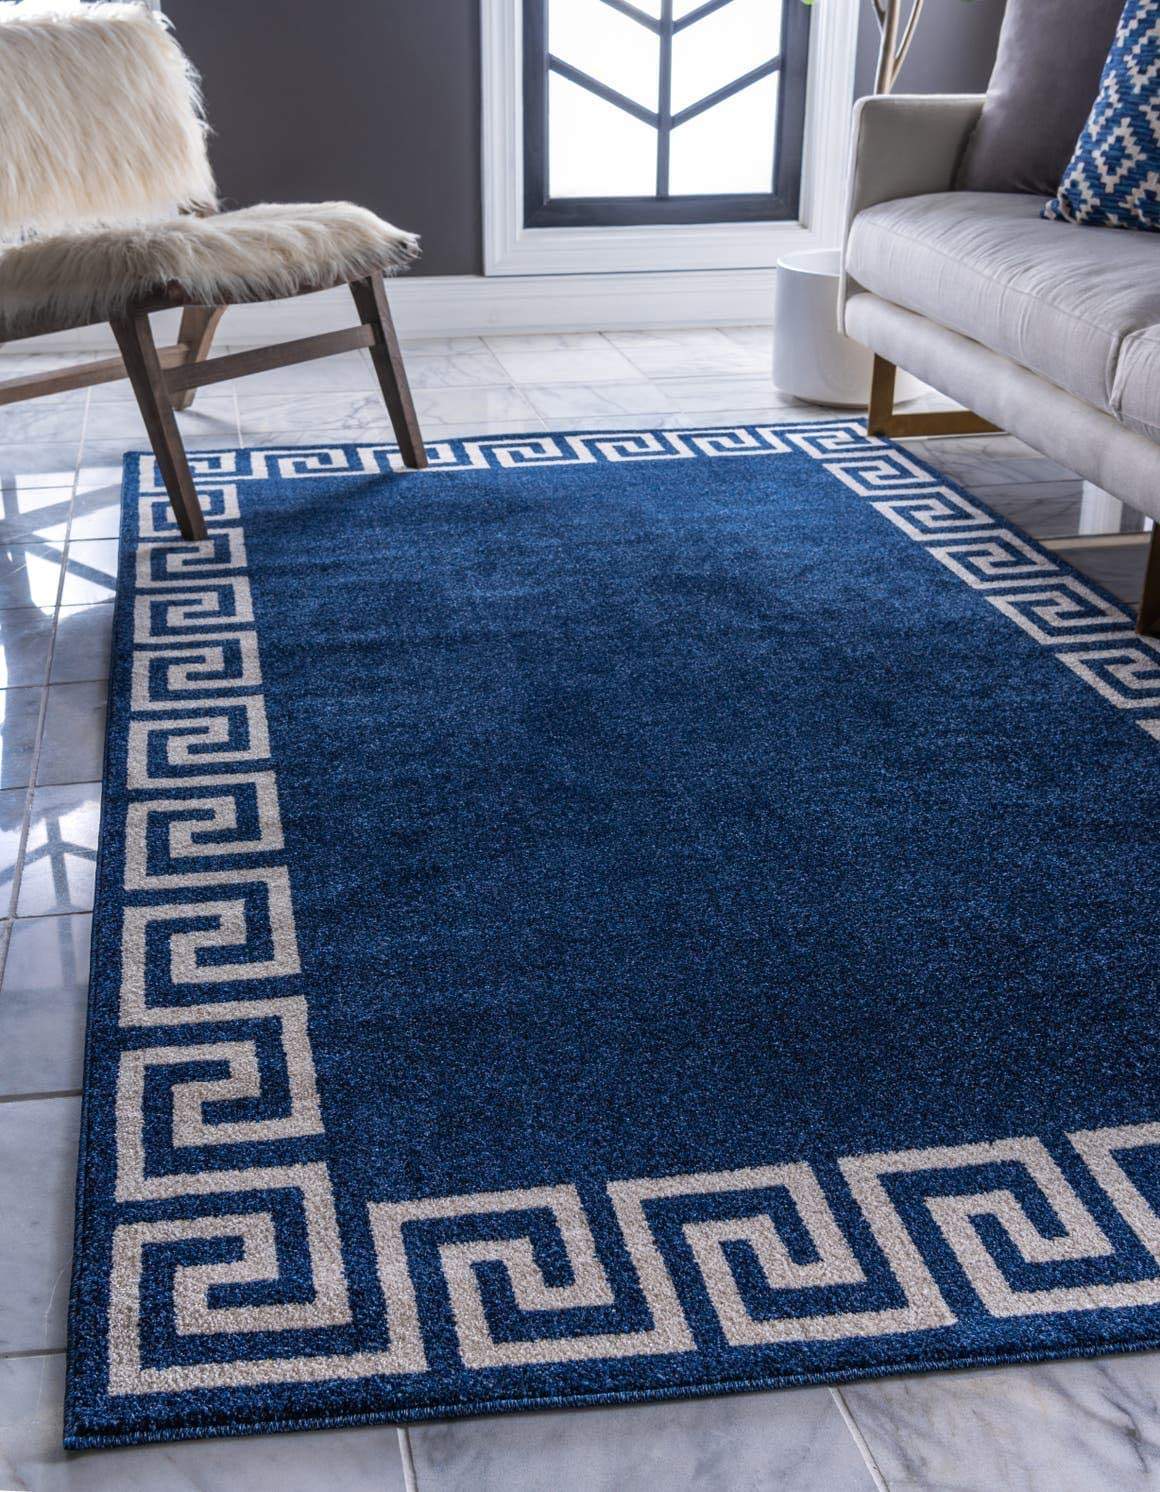 Unique Loom Athens Collection Geometric Casual Modern Border Navy Blue Area Rug 2 2 x 3 0